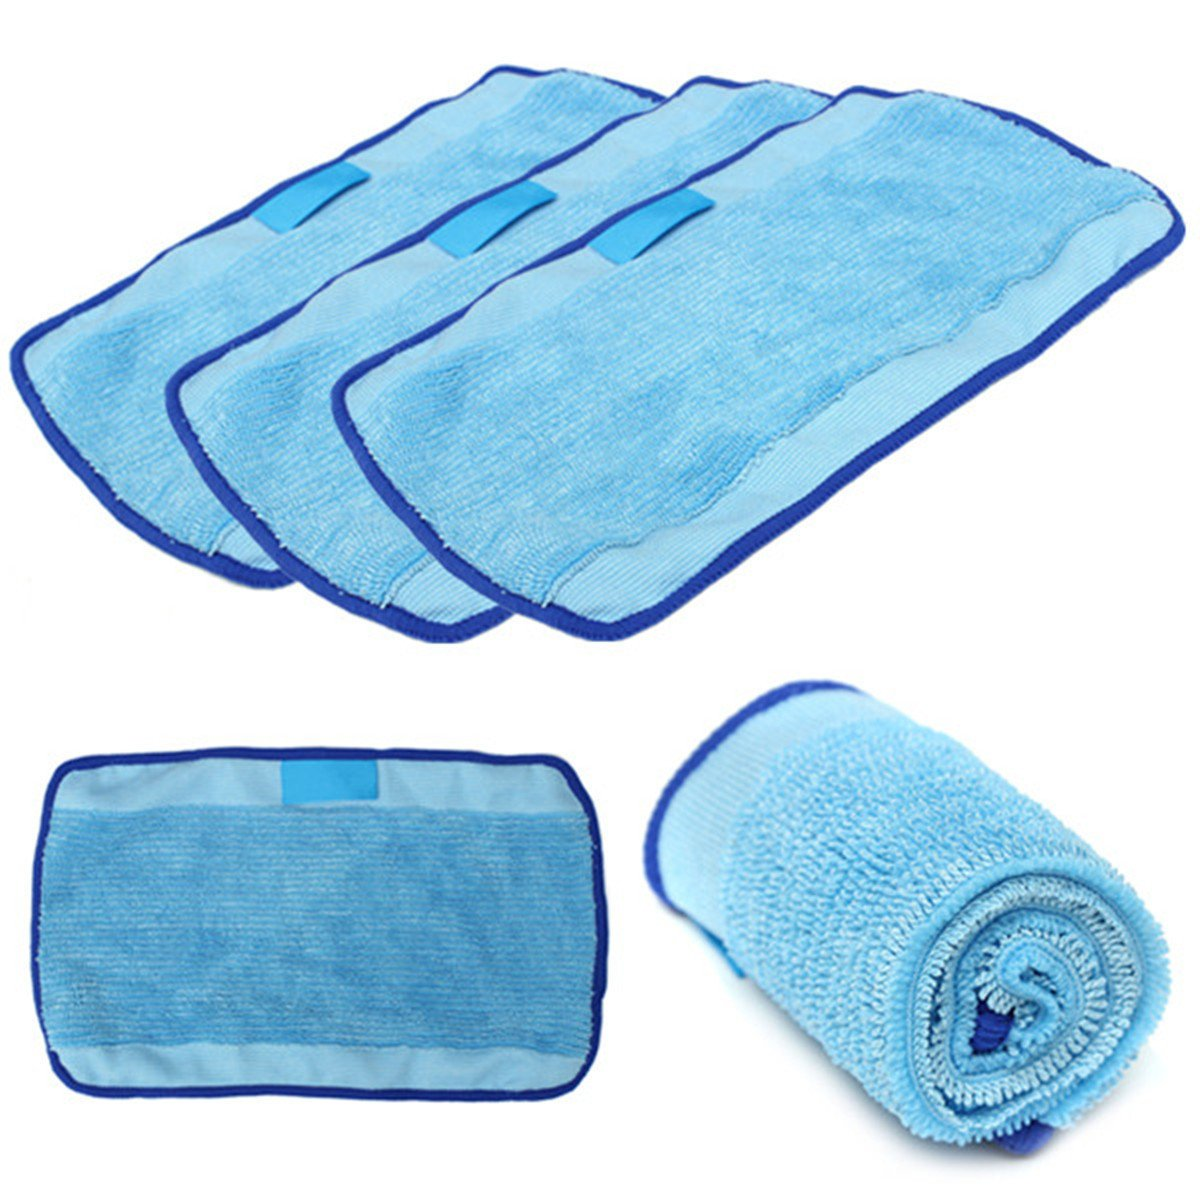 Bazaar 3Pcs Microfiber Mopping Cloths Spare Part for iRobot Braava 380t 320 Mint 4200 5200 Robot Big Bazaar